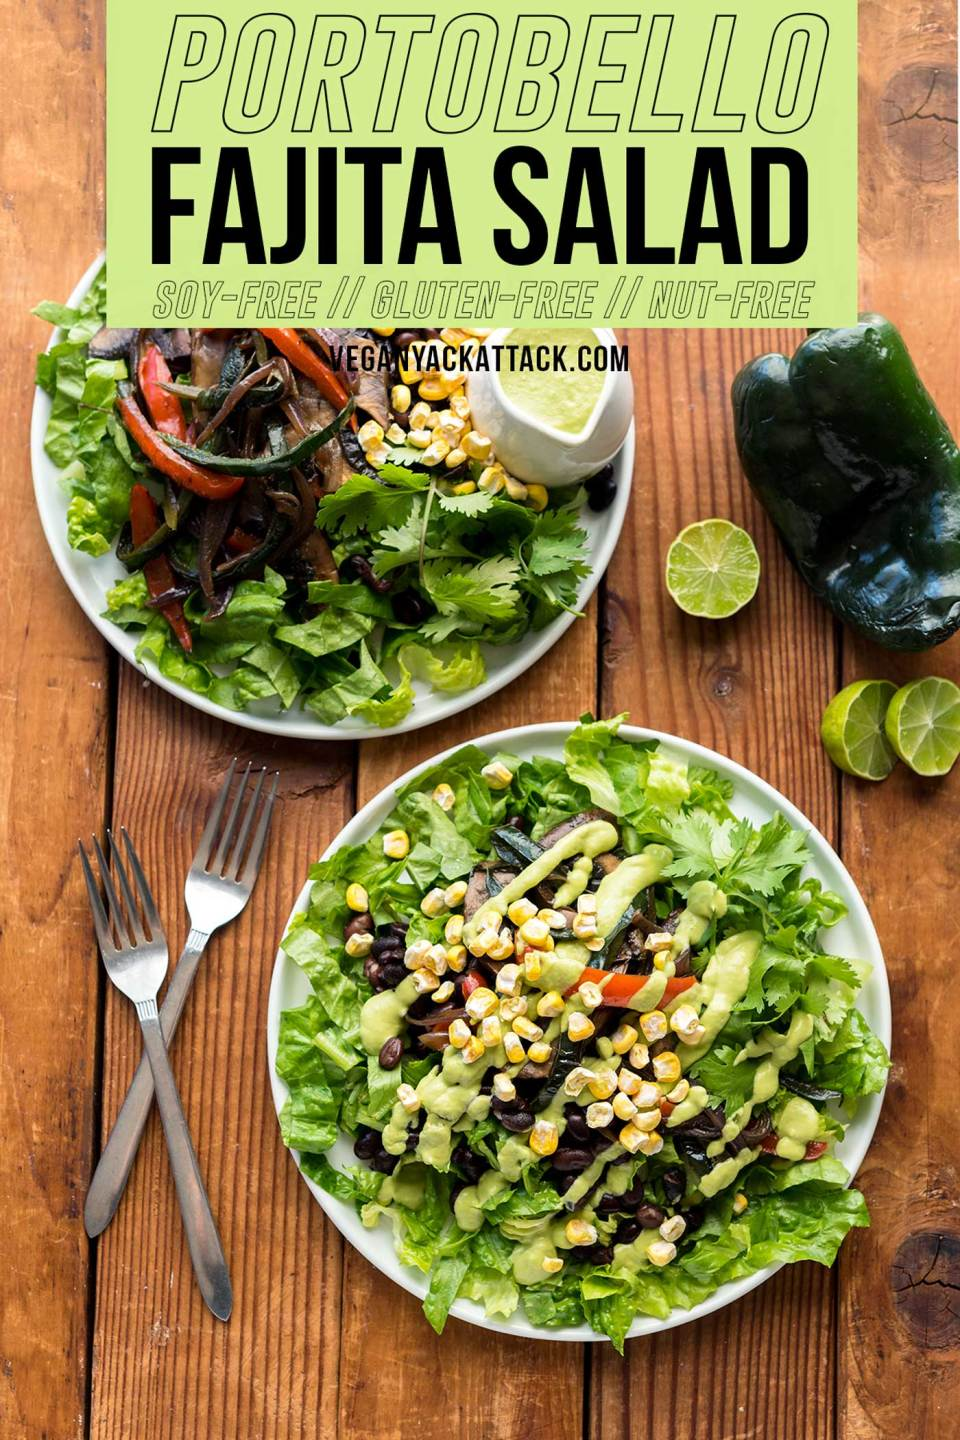 Need dinner in a pinch? This Portobello Fajita Salad from Vegan Yack Attack On the Go! is packed with flavor and comes together in under 30 minutes. You'll want the creamy avocado dressing on everything! Soy-free, Gluten-free, & Nut-free, to boot!